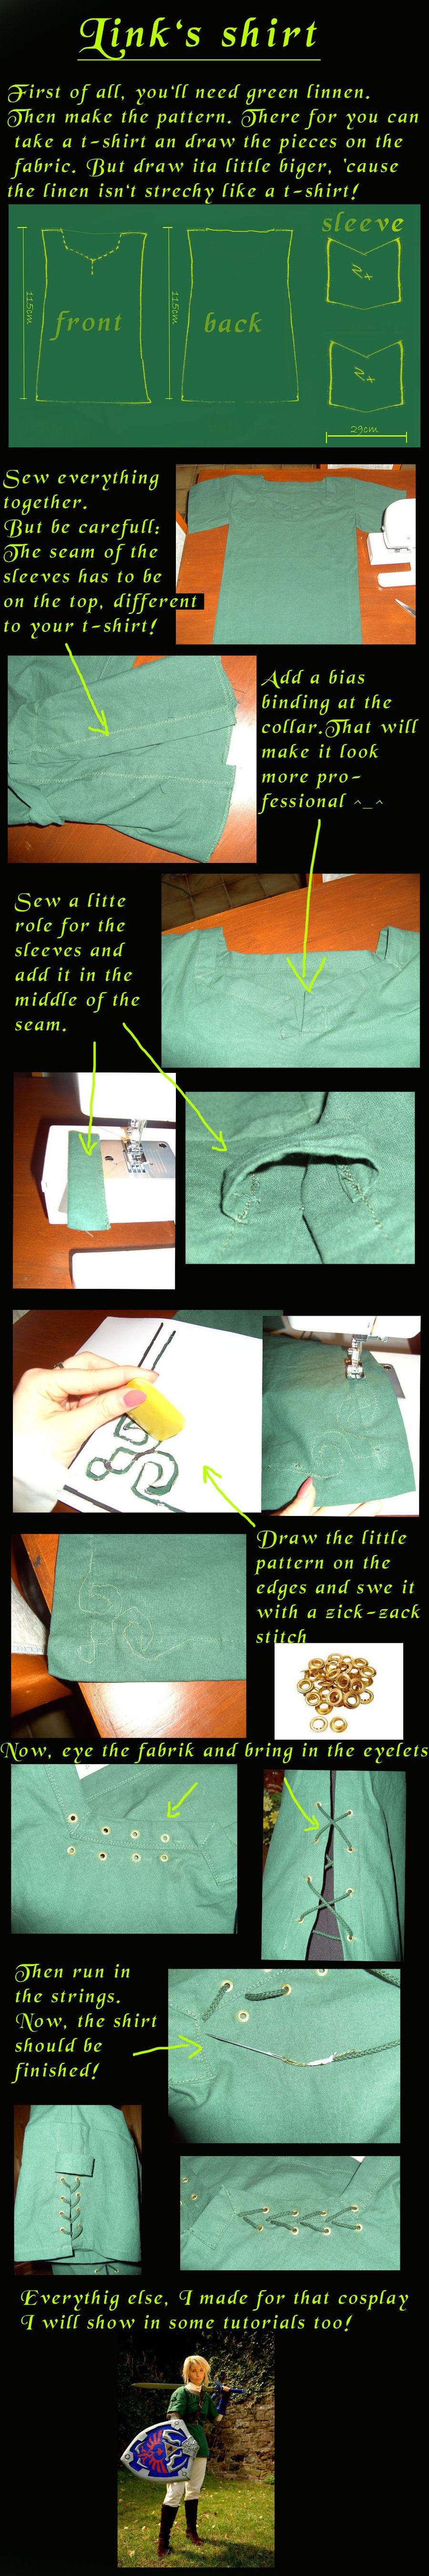 Tutorial how to links shirt by eressea sama on deviantart art i wanna cosplay link so bad tutorial how to links shirt by eressea sama on deviantart baditri Images